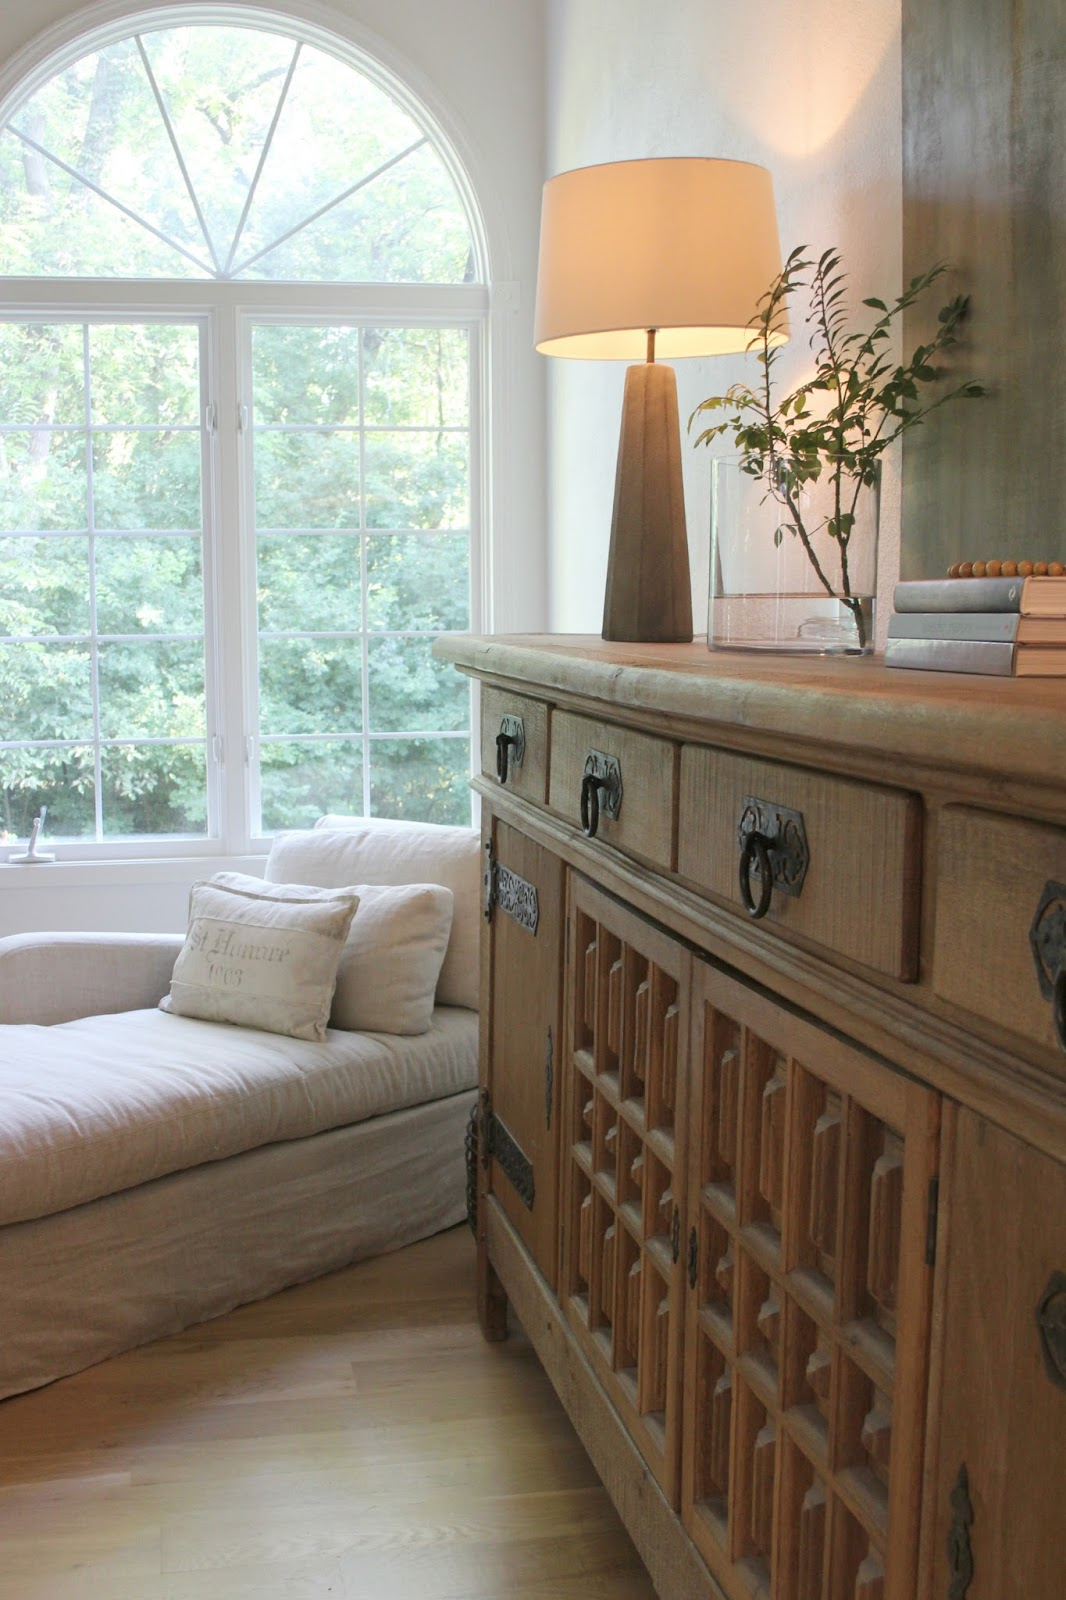 Belgian linen chaise and rustic antique Belgian sideboard in my light and bright European country living room with white oak hardwoods - Hello Lovely Studio.